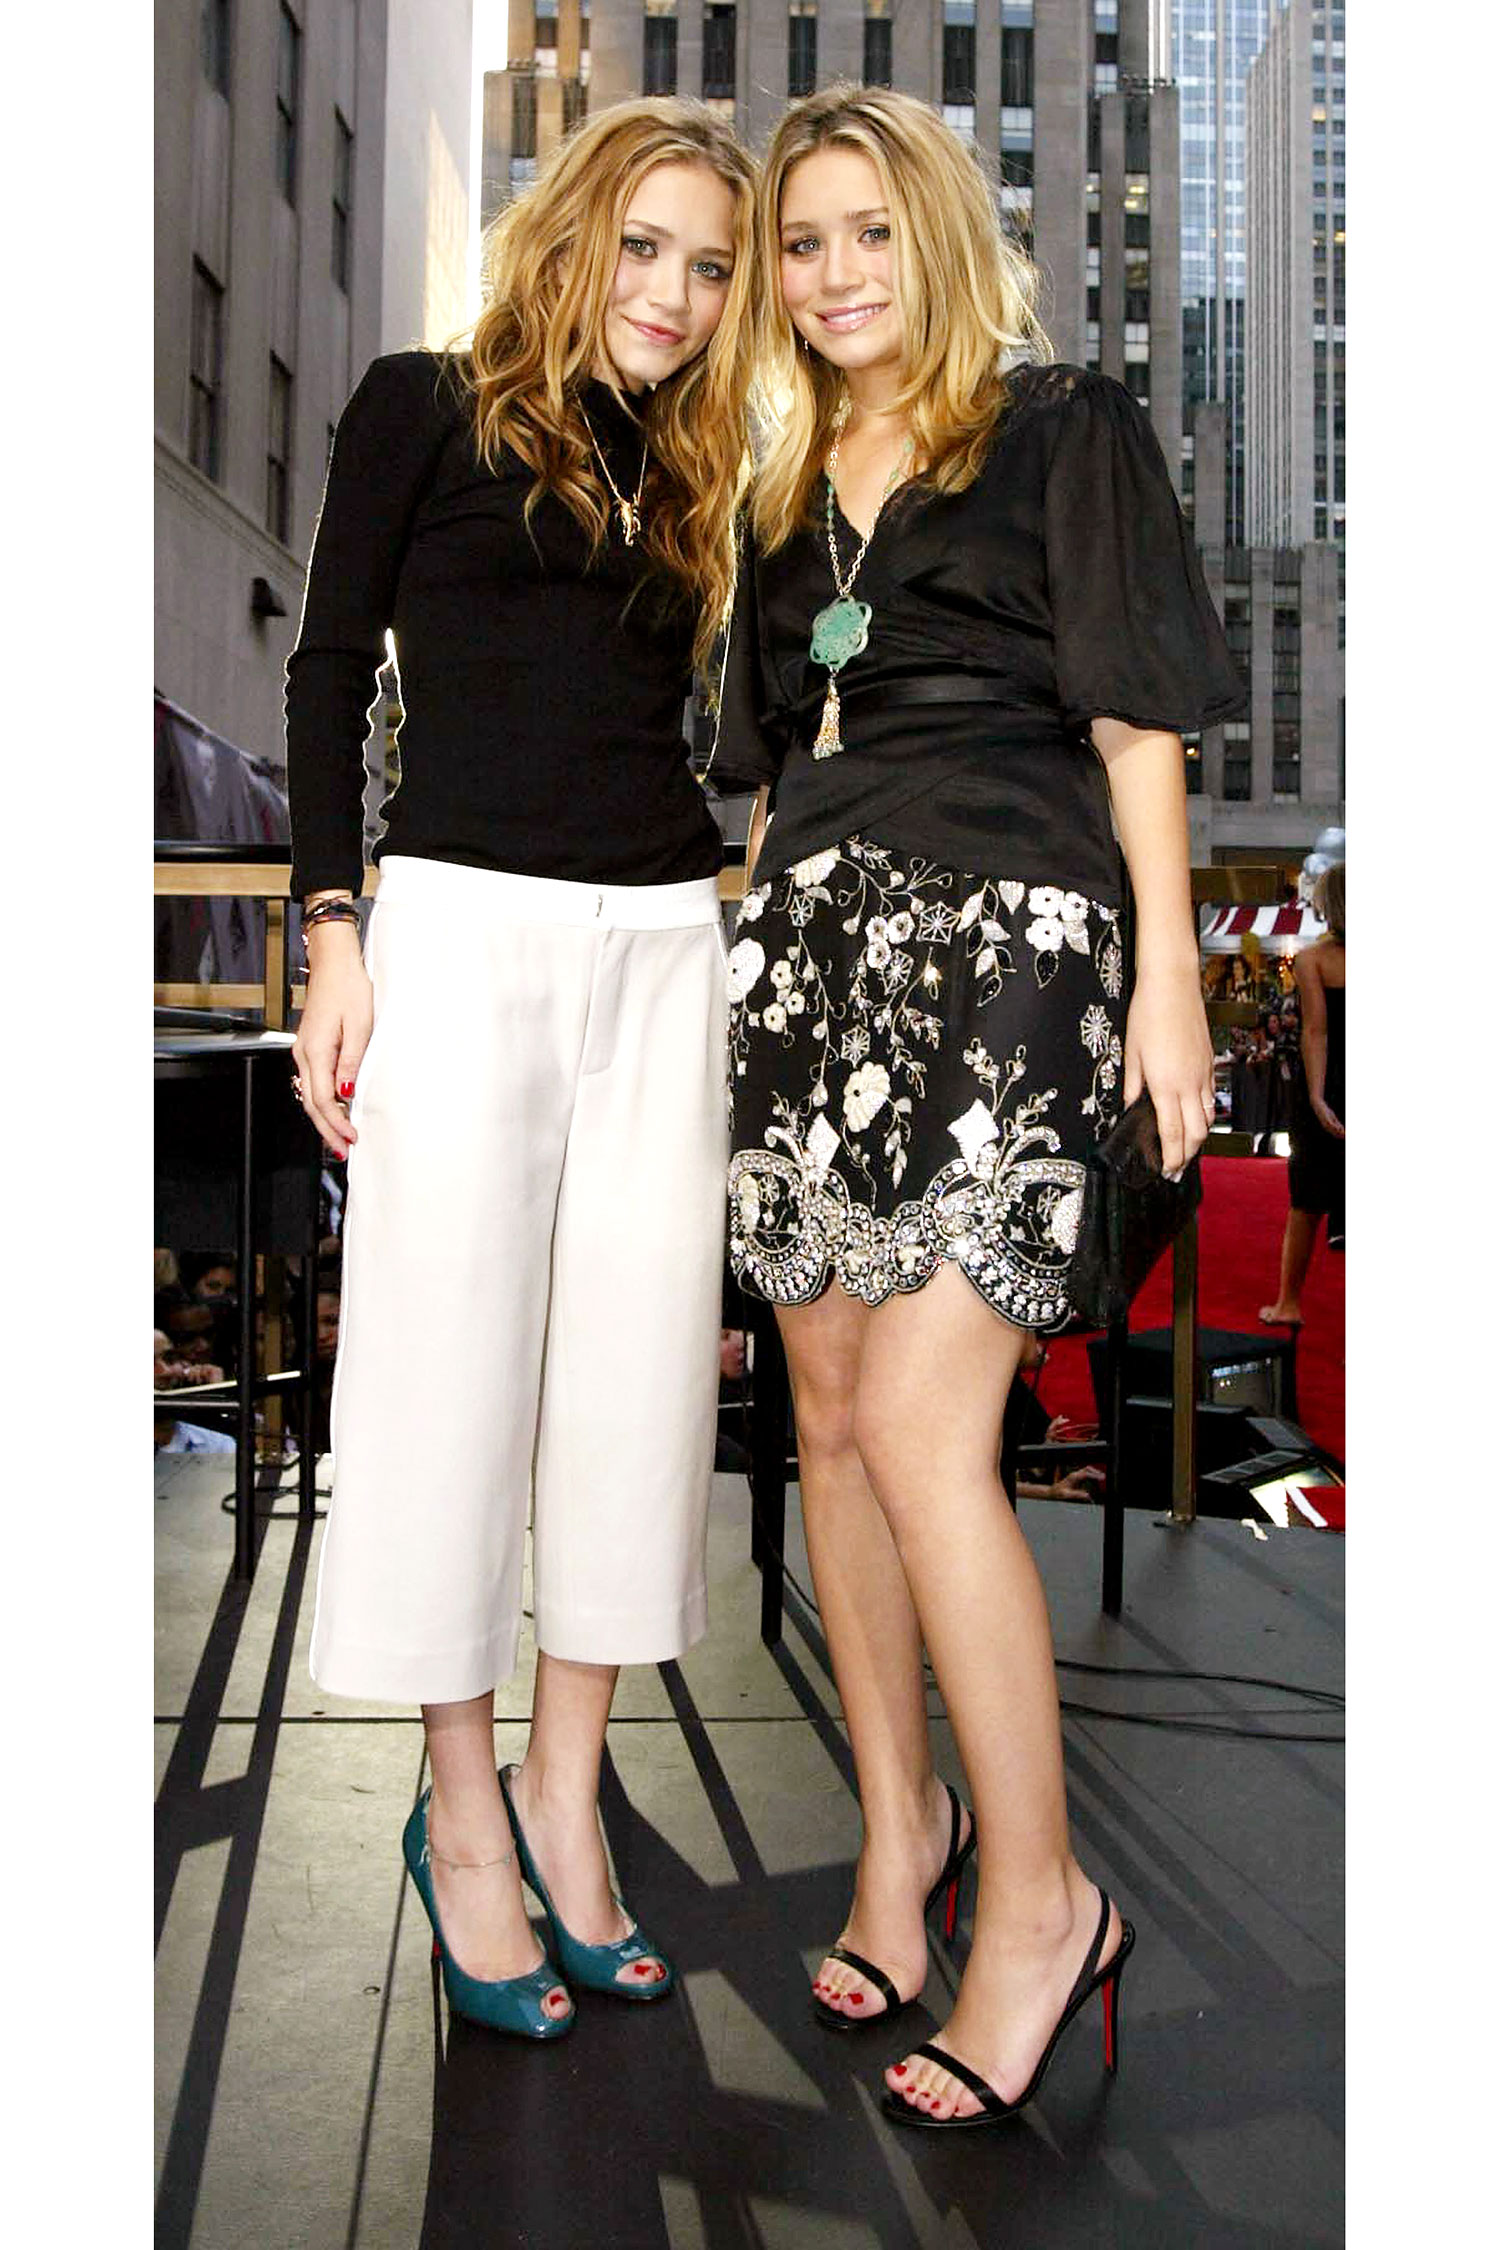 The Style Evolution of Mary-Kate and Ashley Olsen